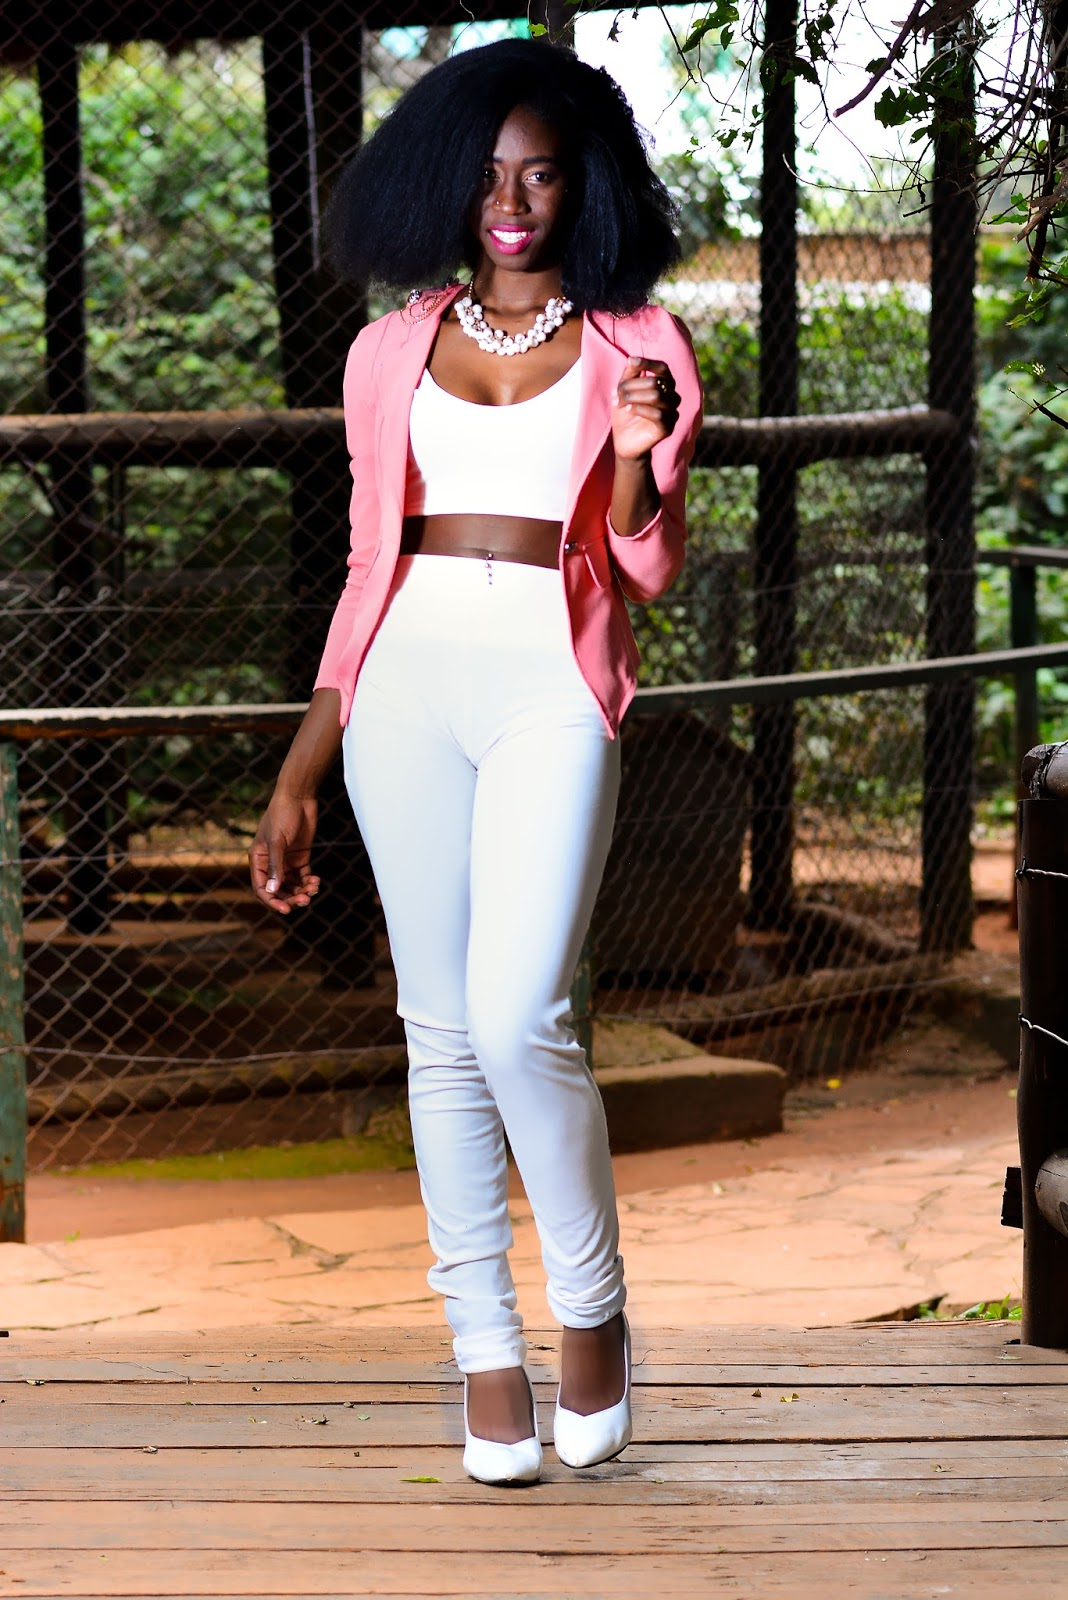 crop top trend, how to wear a crop top, all white crop top outfit, corol pink coat outfit, style with ezil, Ezil, African fashion blogger, Kenyan fashion blogger